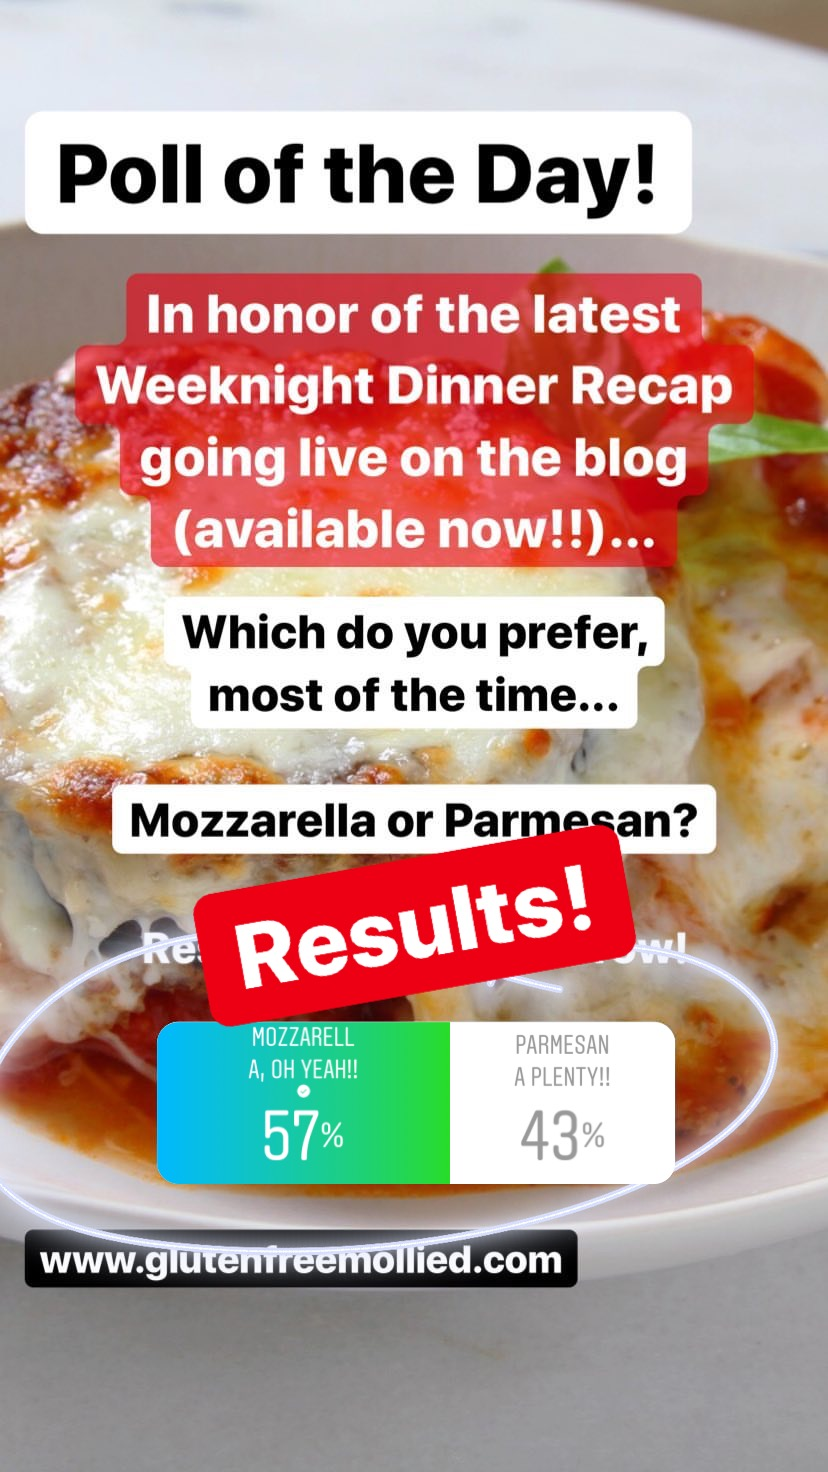 "You know, I was kind of surprised by these results! And for me, I'm leaning more toward Parmesan, but that's just because I prefer a somewhat stronger flavor to my cheese. Don't get me wrong - I love mozzarella in all forms - but I love freshly grated Parmesan so much, especially on hot pasta, pizza, or any other dish really! So, I suppose the bottom line is... I love both! There is a time for each and while this was a fairly close ""race,"" the mozzarella group pulled ahead to win the poll. But, at the end of the day, does it really matter? Picking between two great cheeses is harder for me than picking where to go for dinner (just slightly).  :)"